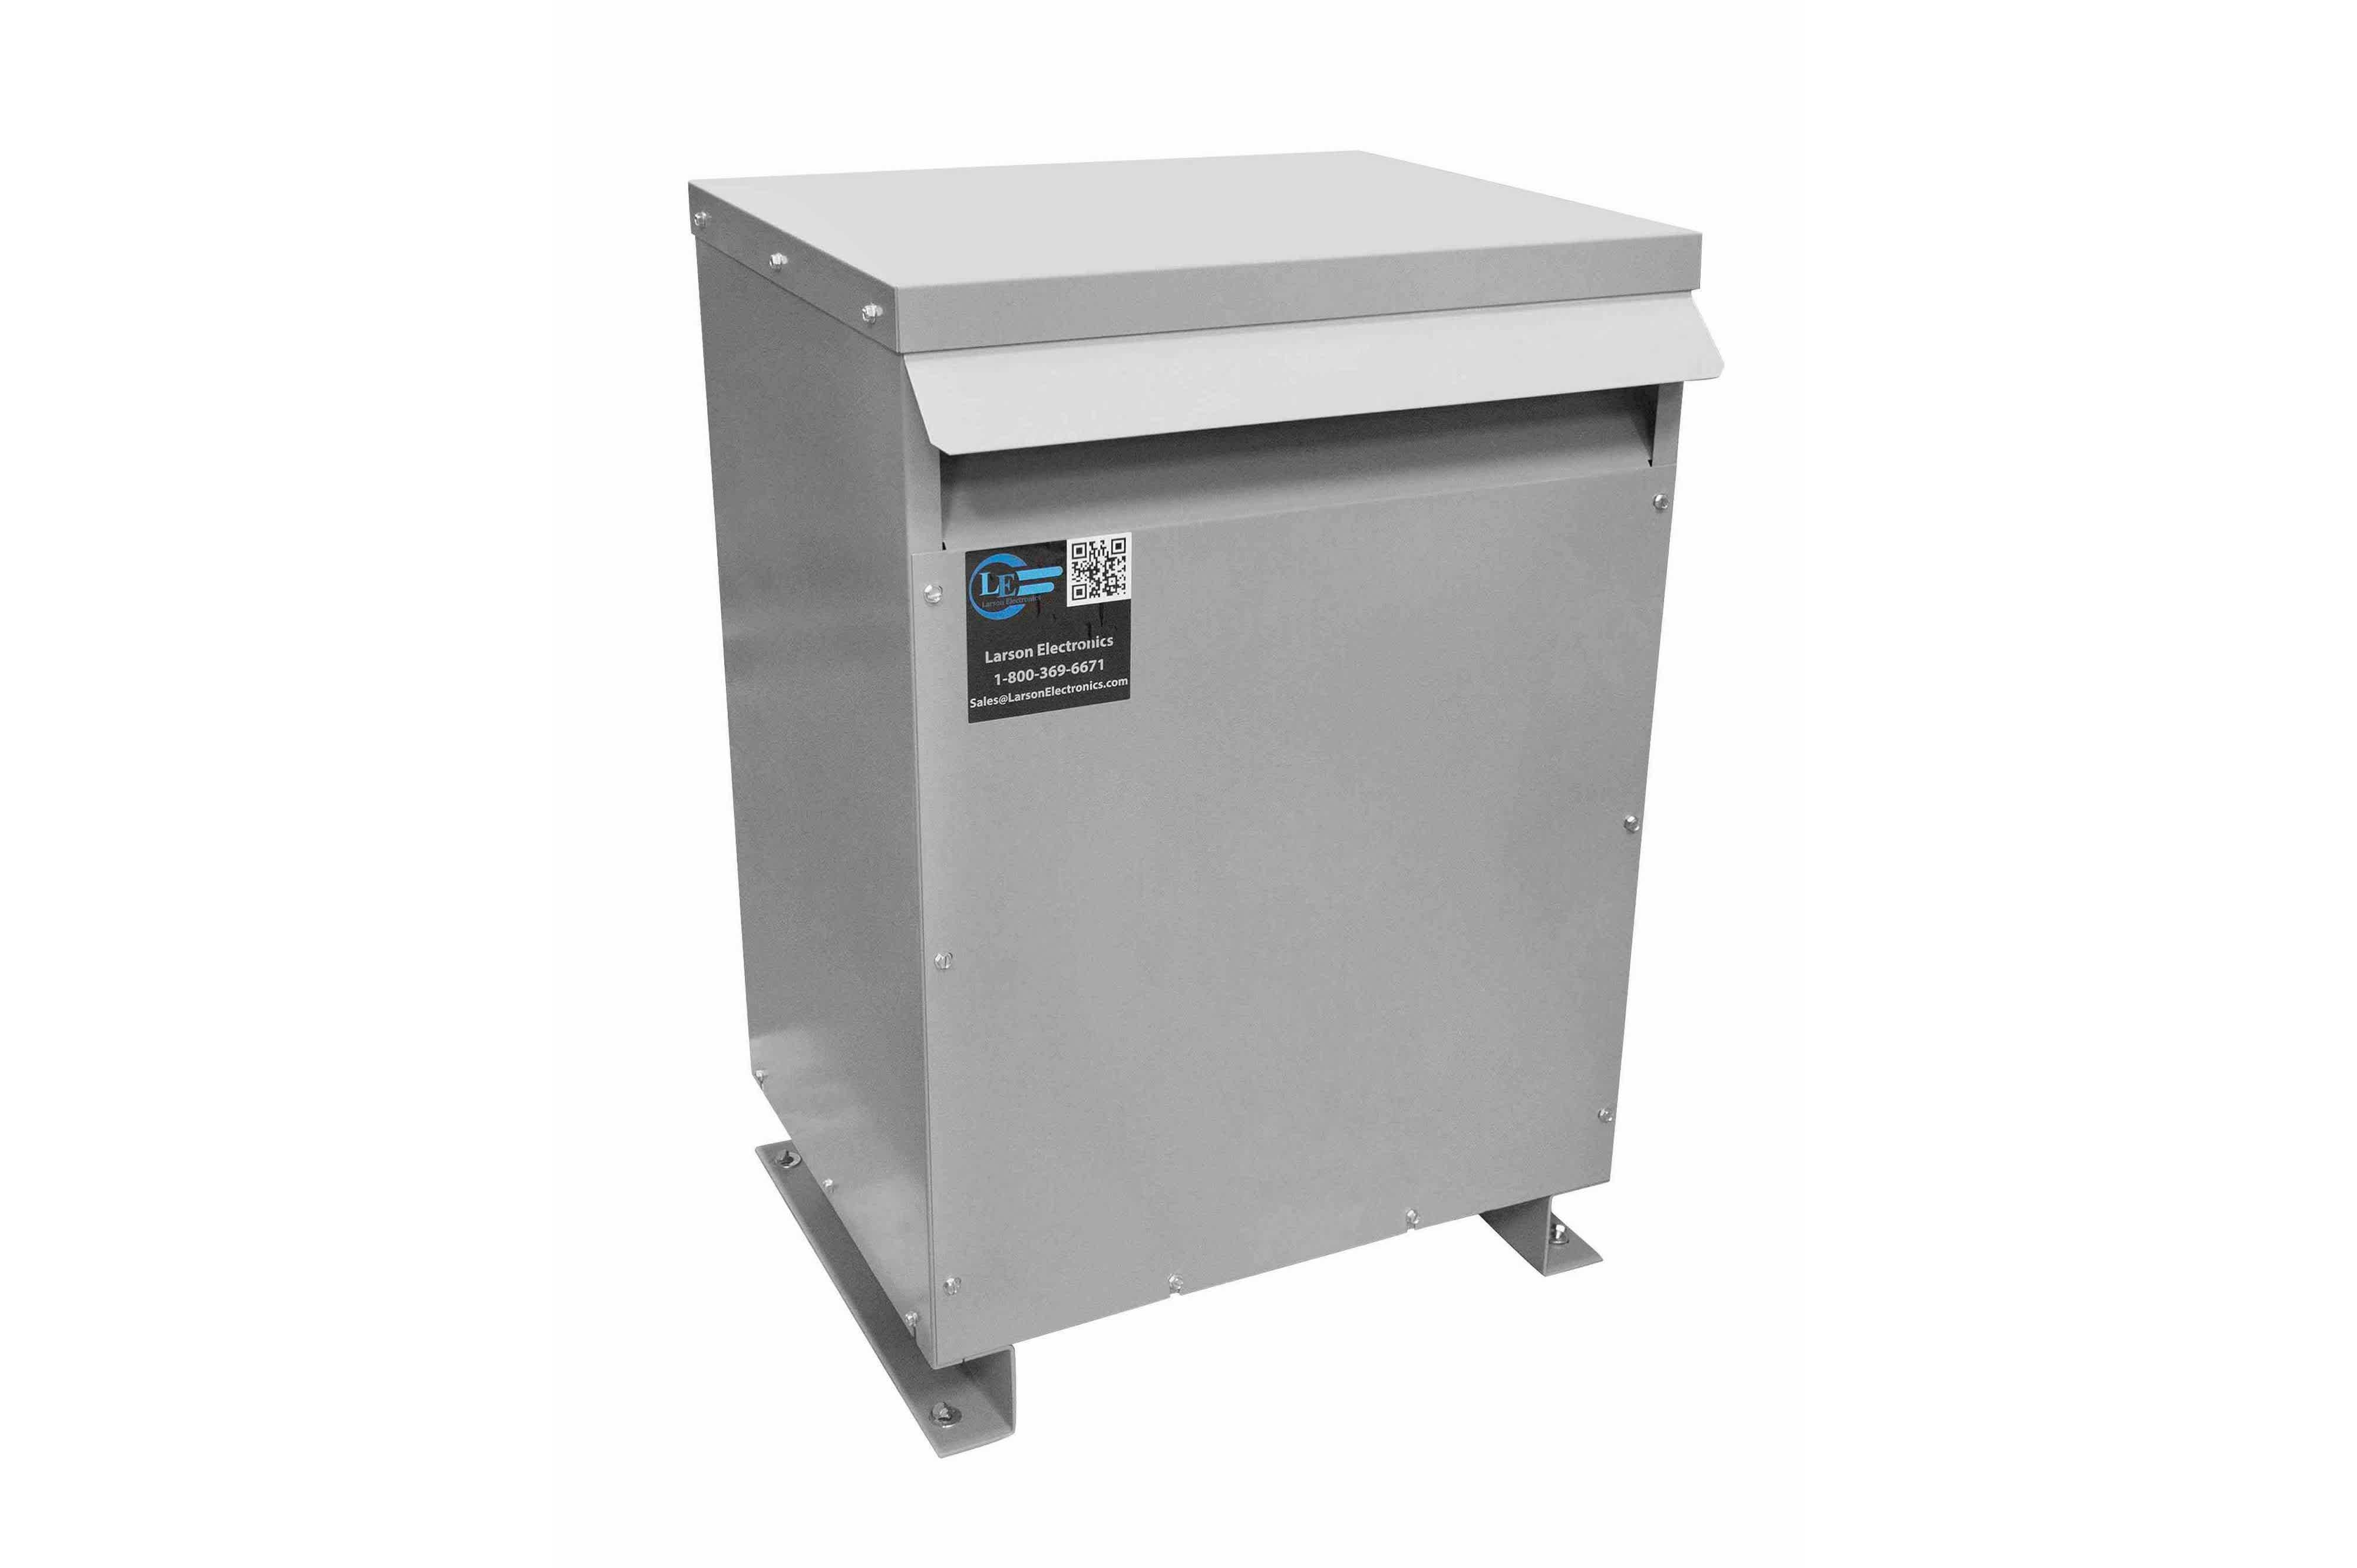 150 kVA 3PH Isolation Transformer, 208V Delta Primary, 400V Delta Secondary, N3R, Ventilated, 60 Hz